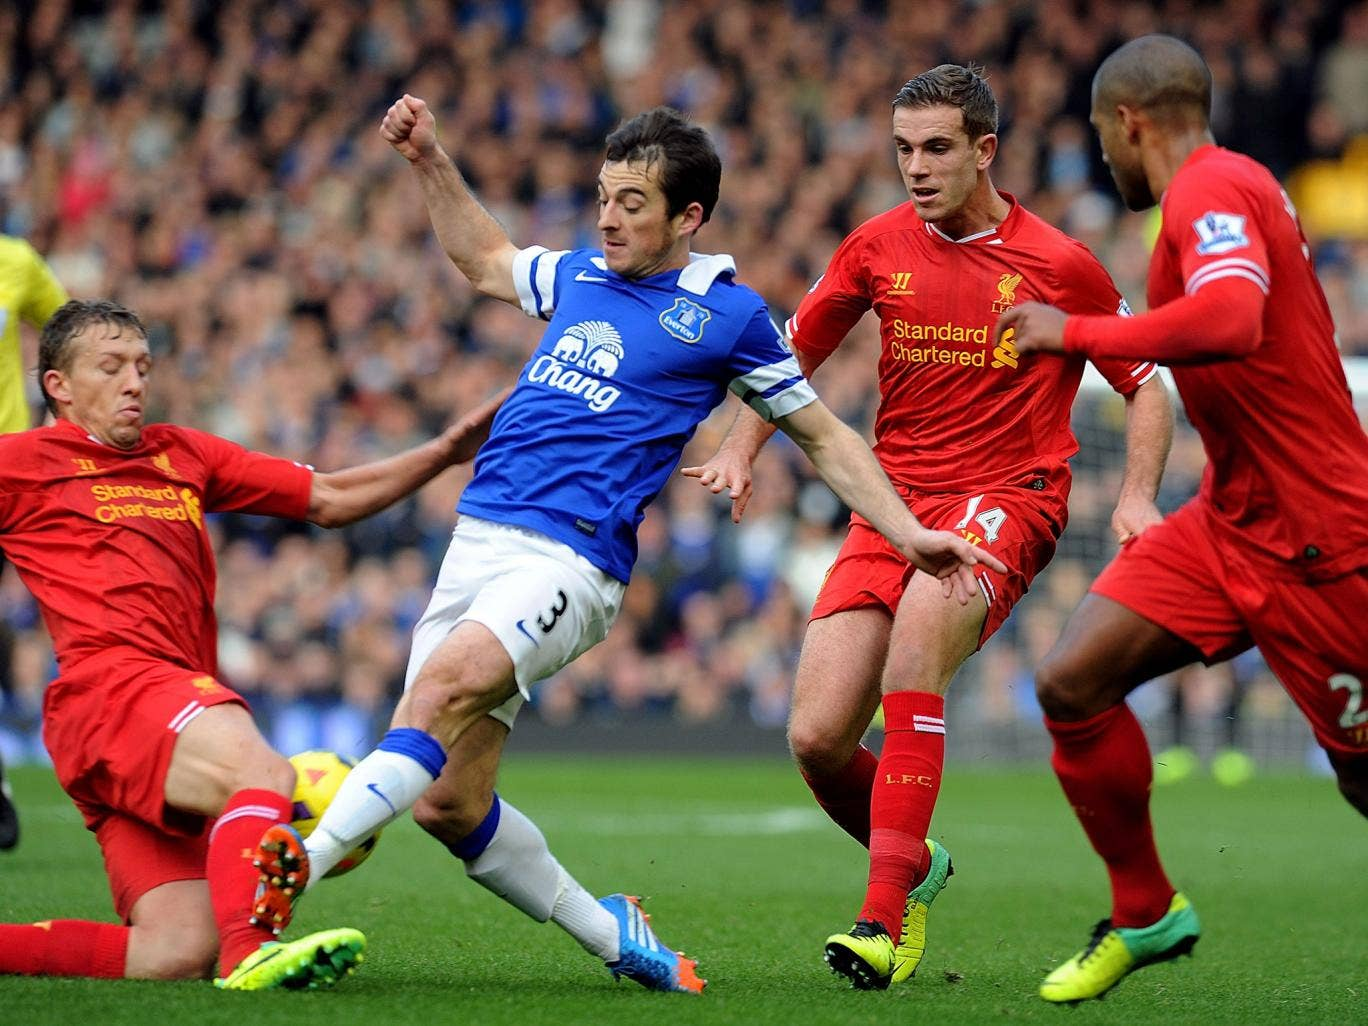 Leighton Baines has been ruled out for up to six weeks after suffering a broken foot